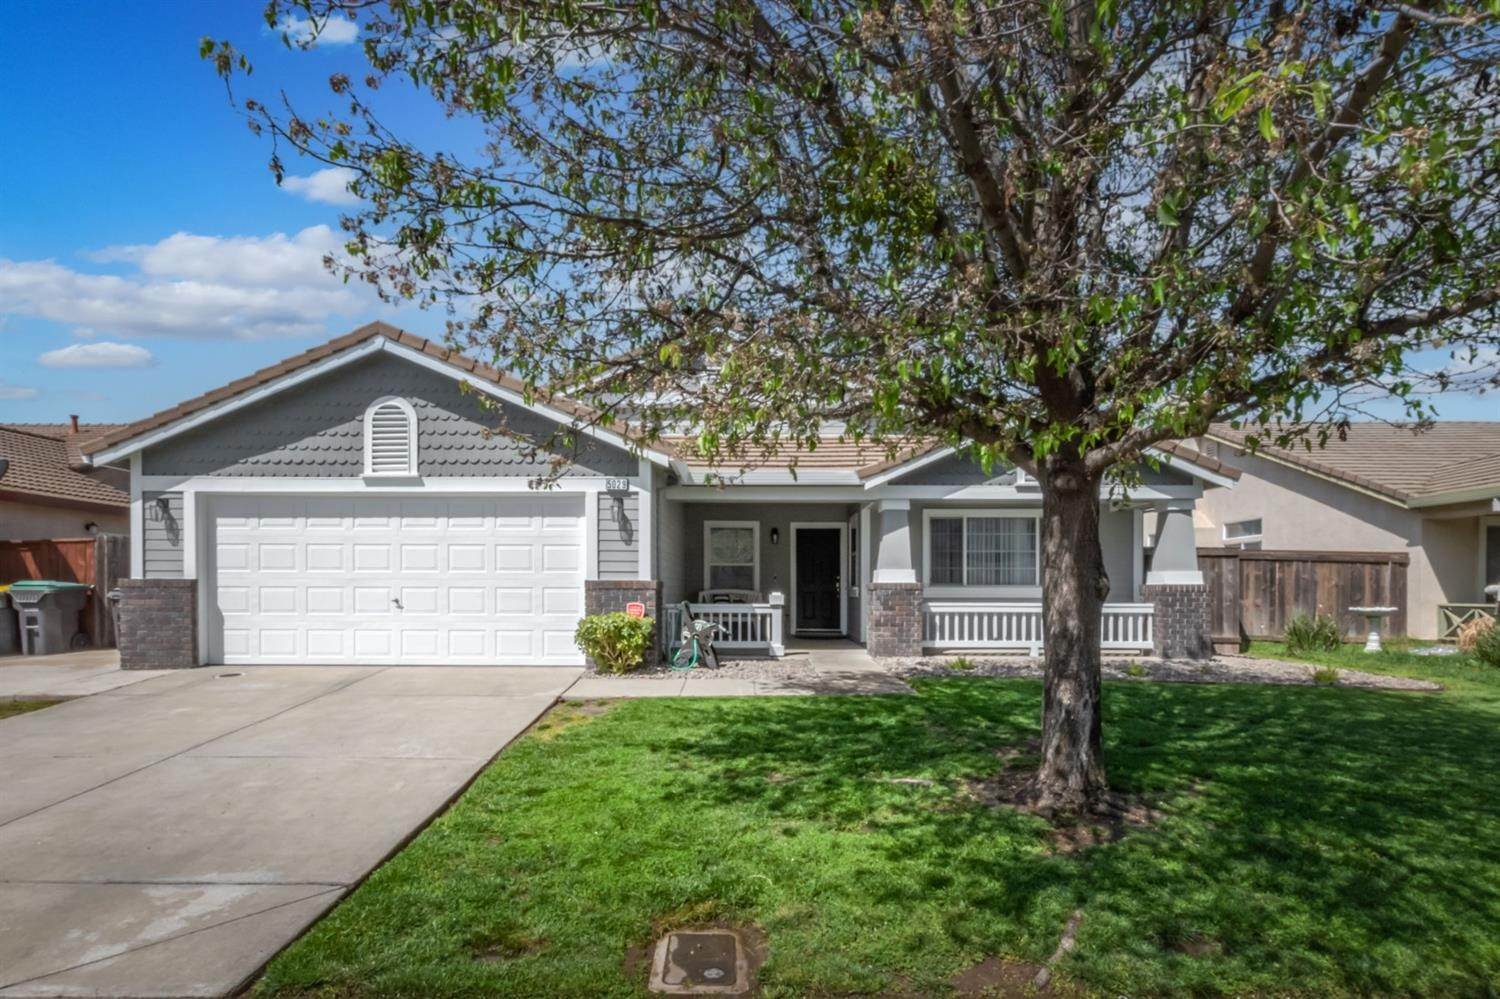 Single Family Homes for Active at 5029 Alee Lane Stockton, California 95206 United States